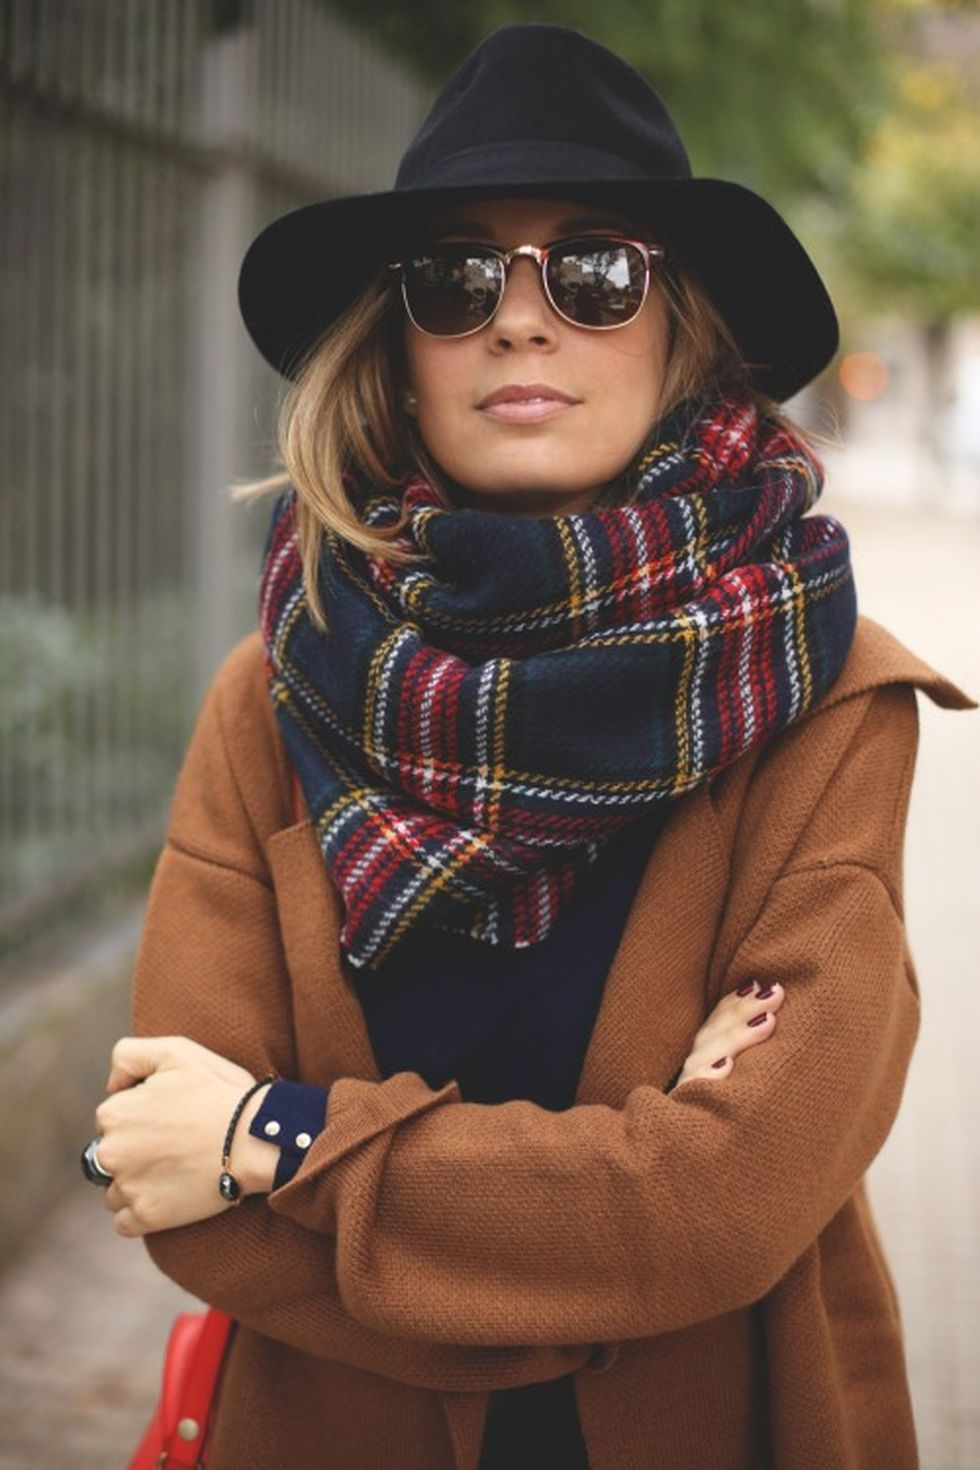 Fashionable Women Hats For Winter And Snow Outfits 21 -6650